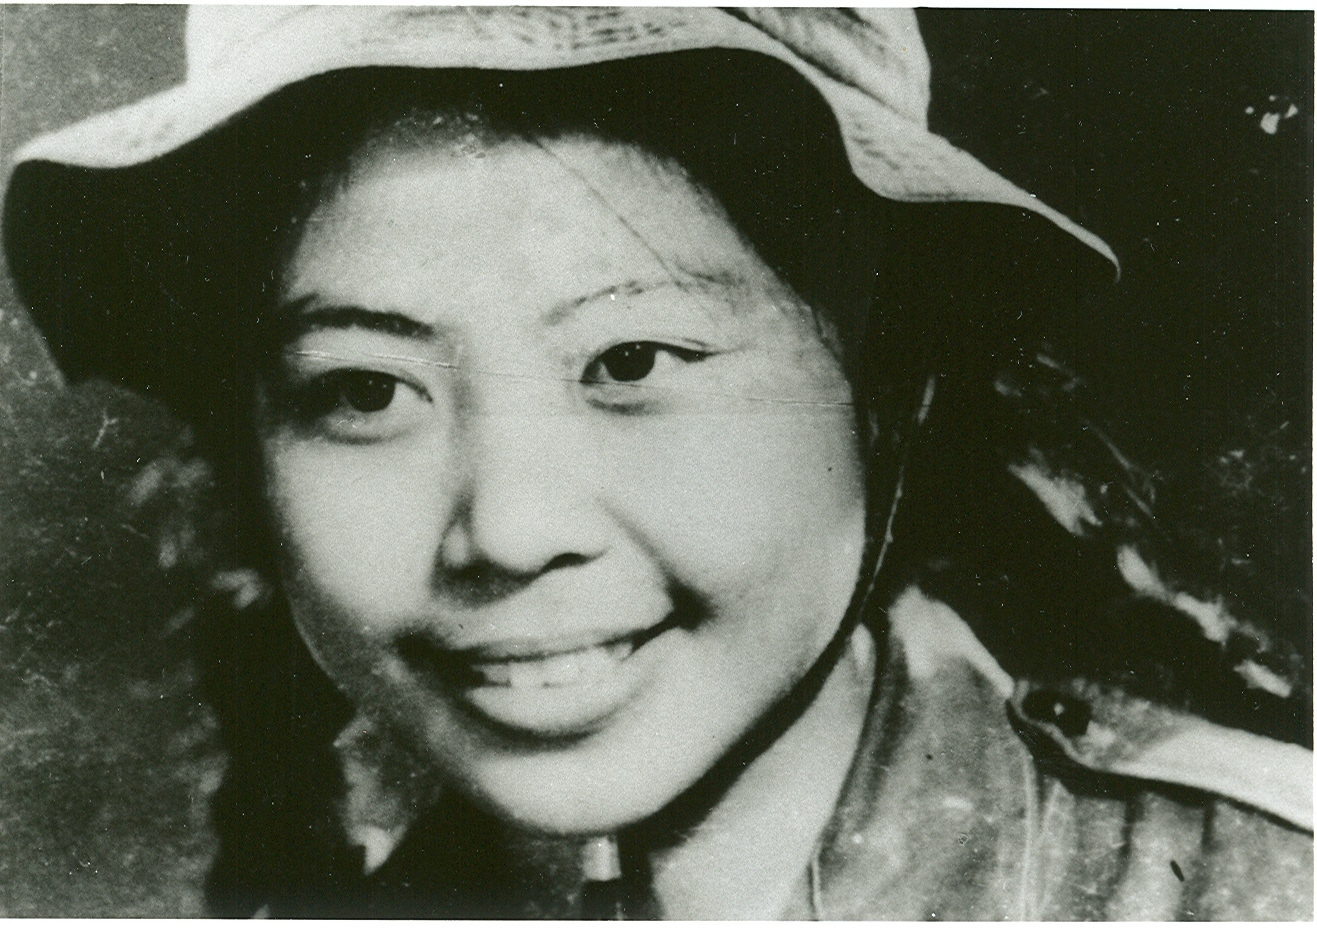 "Le Minh Khue. As a teenager, she worked to clear the Ho Chi Minh trail for the North Vietnamese.                       Normal   0           false   false   false     EN-US   JA   X-NONE                                                                                                                                                                                                                                                                                                                                                                               /* Style Definitions */ table.MsoNormalTable 	{mso-style-name:""Table Normal""; 	mso-tstyle-rowband-size:0; 	mso-tstyle-colband-size:0; 	mso-style-noshow:yes; 	mso-style-priority:99; 	mso-style-parent:""""; 	mso-padding-alt:0in 5.4pt 0in 5.4pt; 	mso-para-margin:0in; 	mso-para-margin-bottom:.0001pt; 	mso-pagination:widow-orphan; 	font-size:12.0pt; 	font-family:""Avenir Book""; 	color:#2A2F3C;}      Lê Minh Khuê. Khi là thiếu niên, Khuê tham gia dọn đường mòn Hồ Chí Minh cho người Bắc Việt Nam."